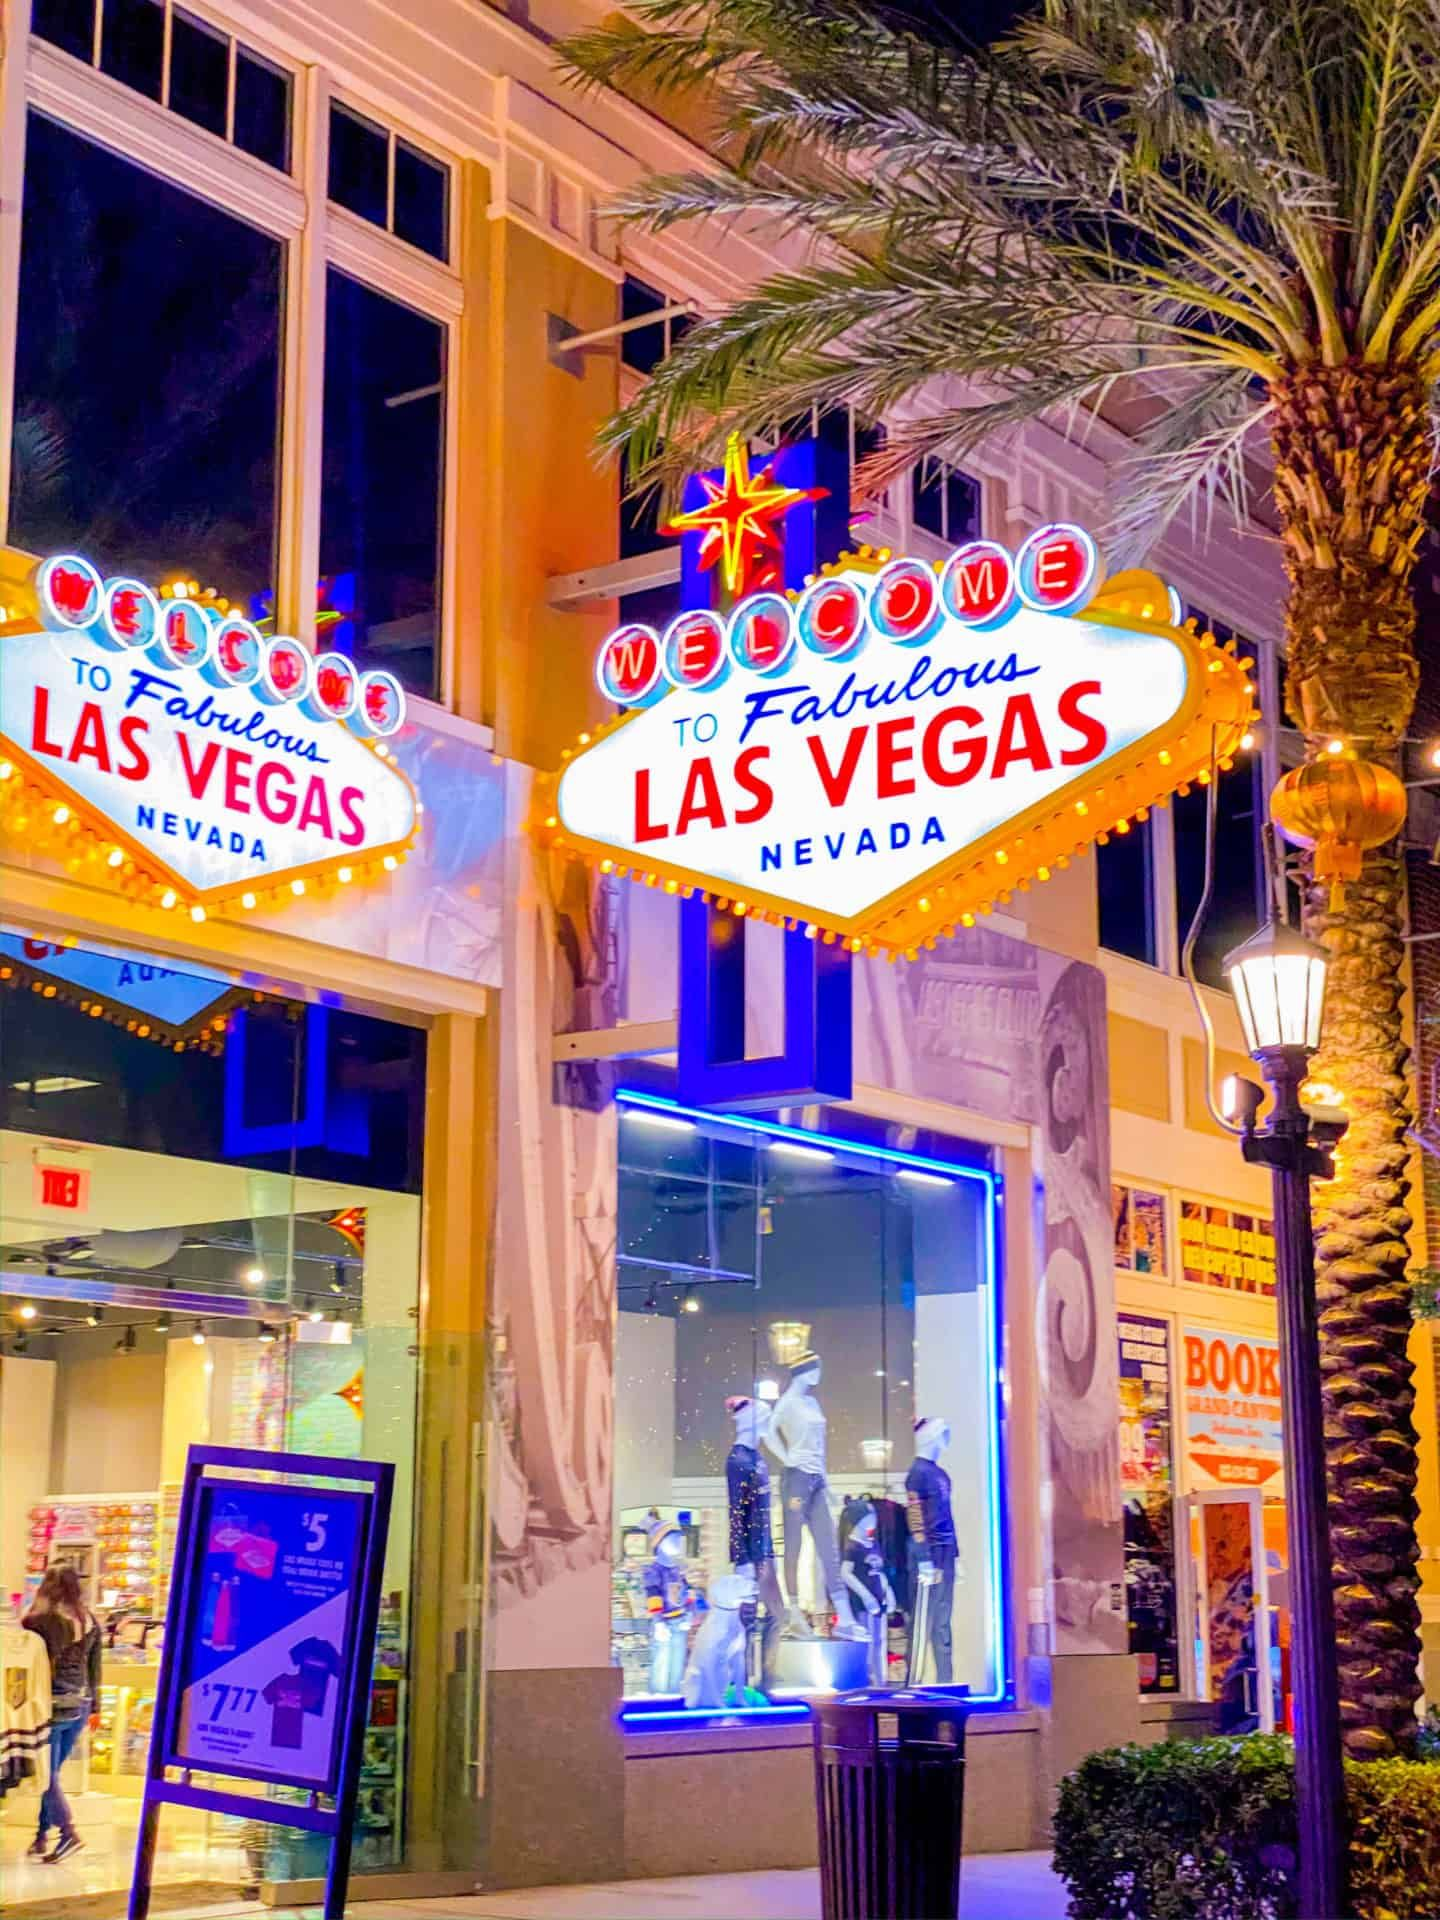 19 Affordable Things To Do In Las Vegas This Weekend